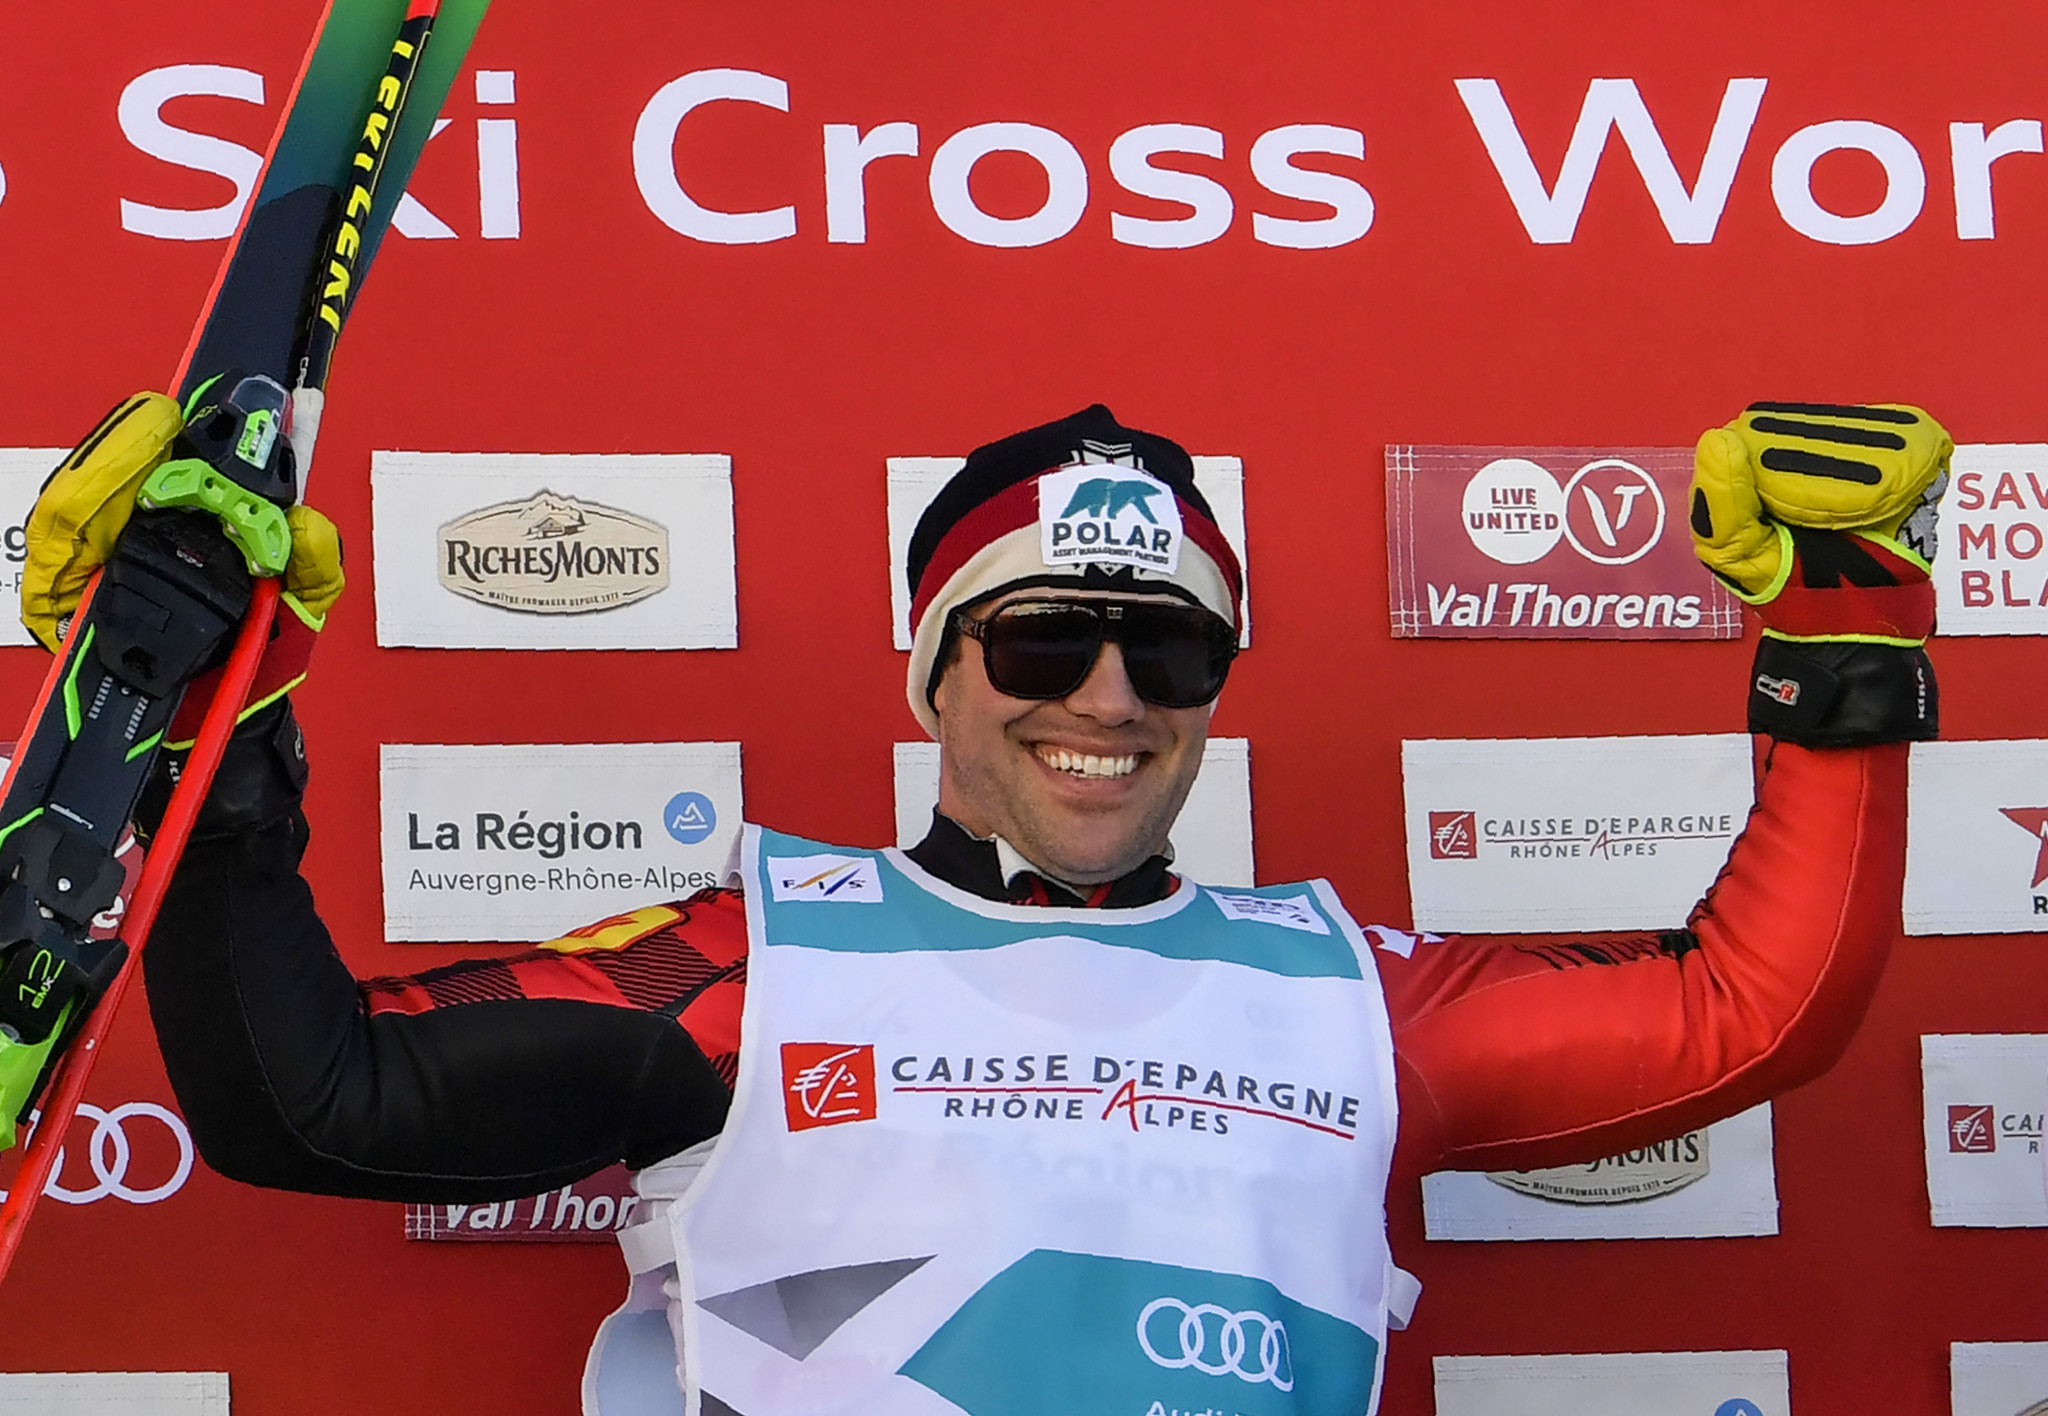 Drury tops men's qualification standings at FIS Ski Cross World Cup in Innichen